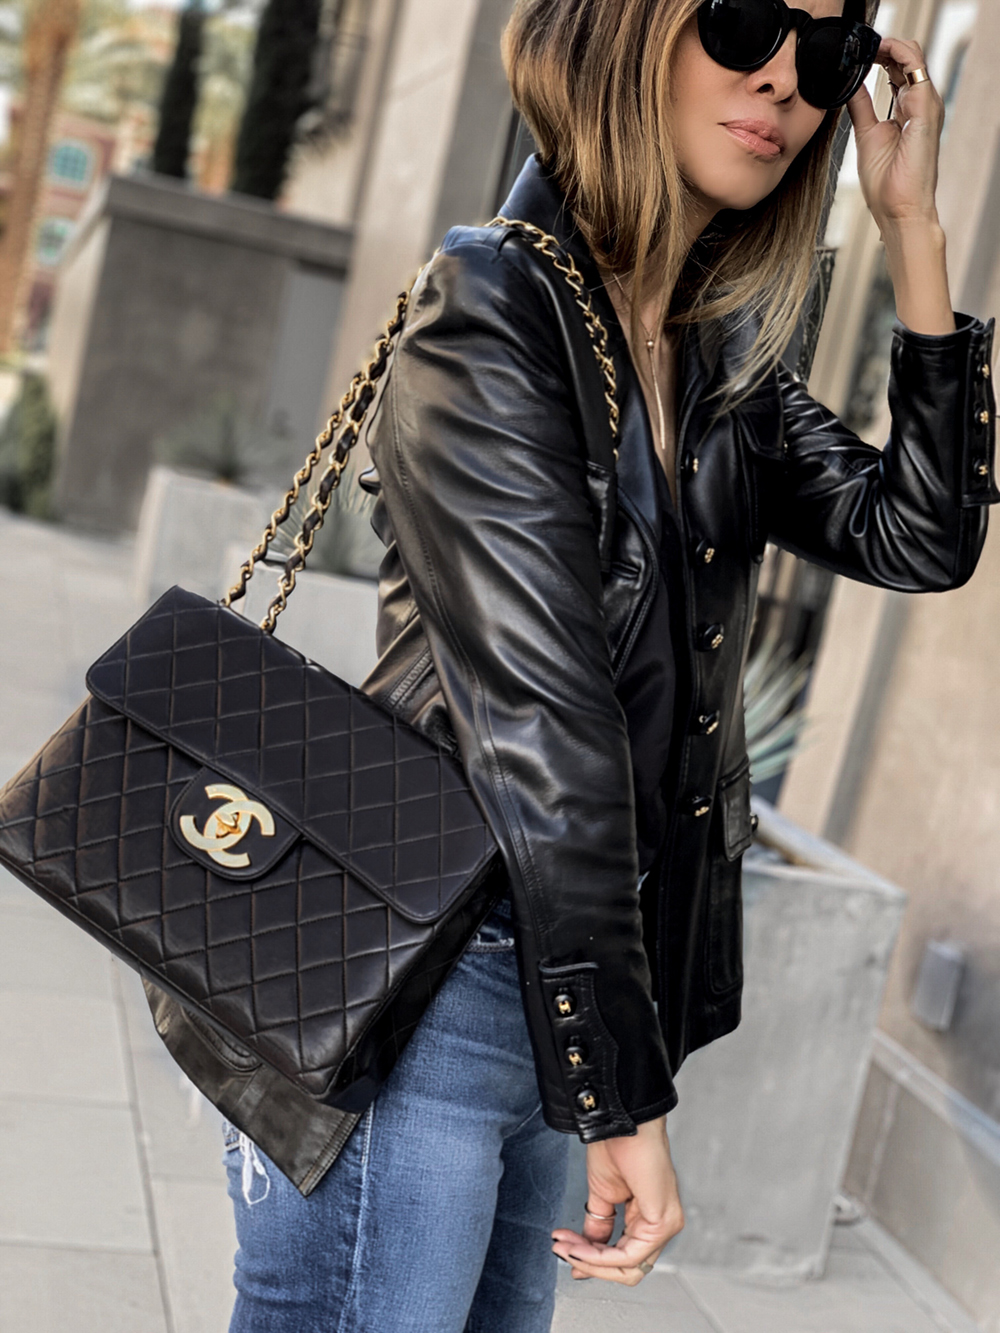 lolario style blogger wearing chanel leather jacket and chanel bag, used designer bags on ebay, ebay authenticate handbags | lolariostyle.com